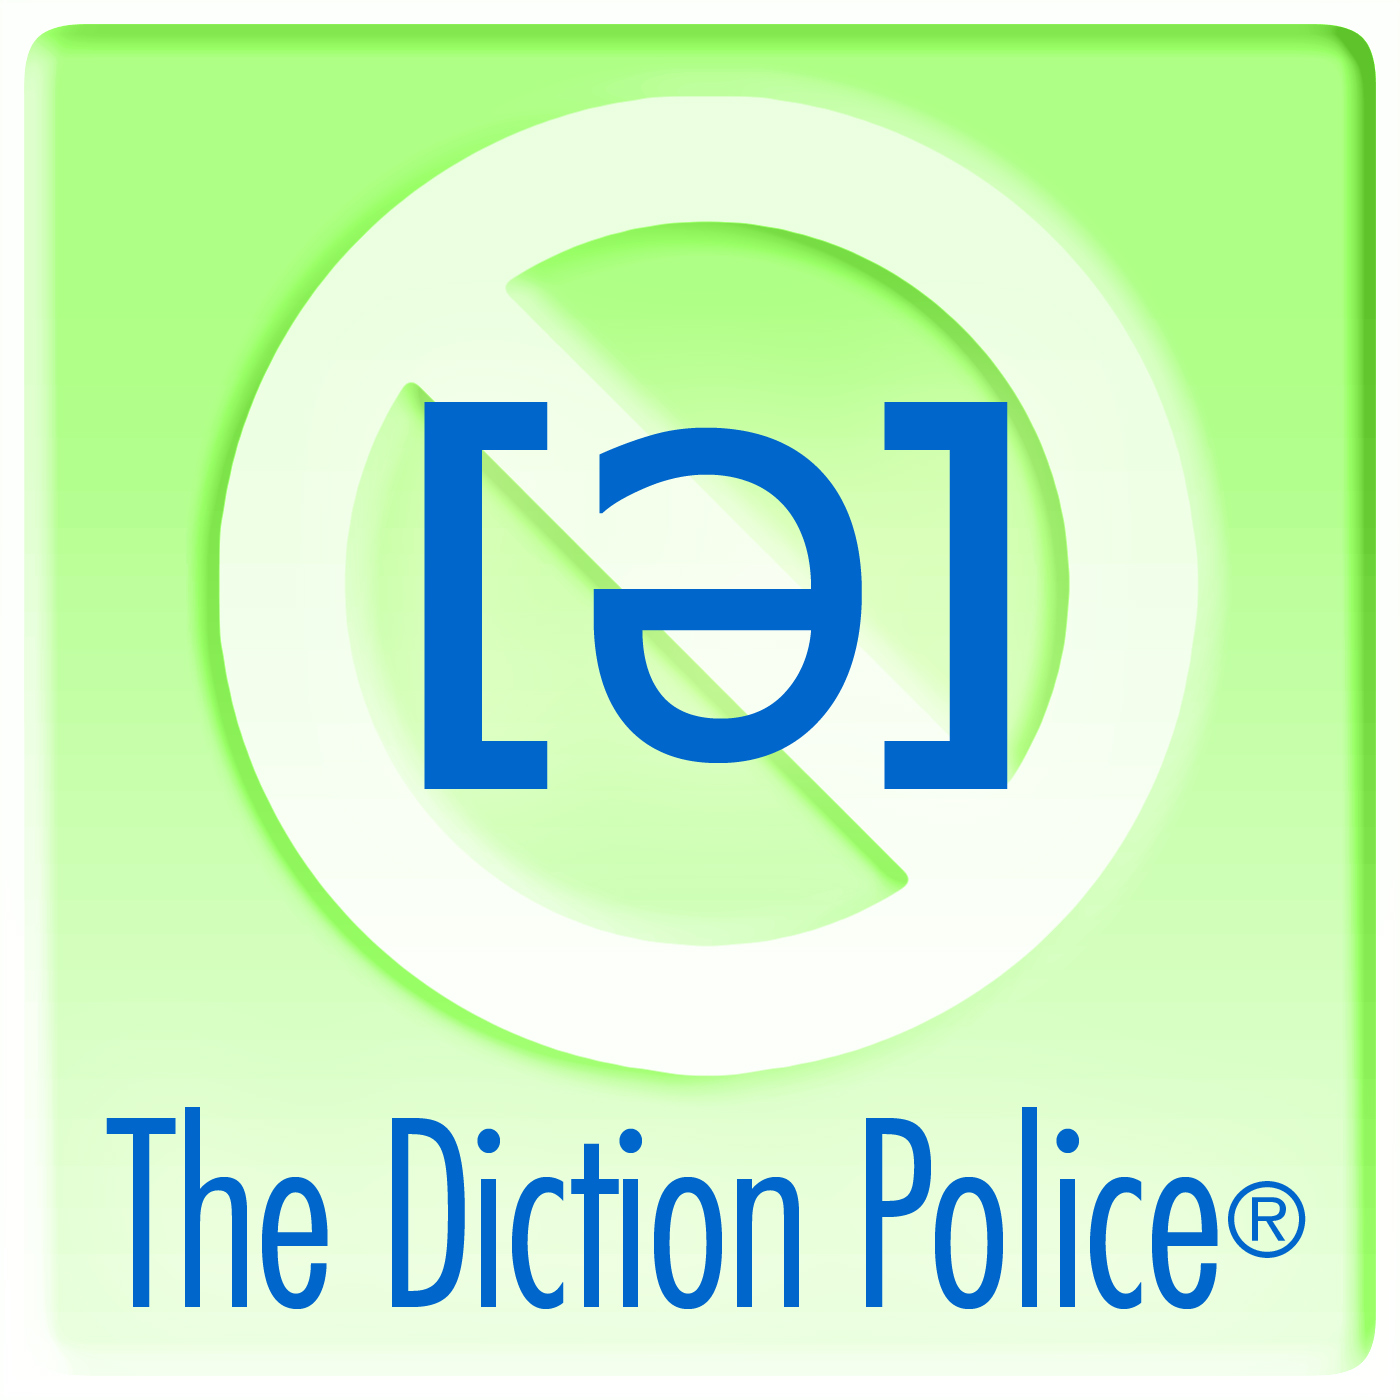 The Diction Police